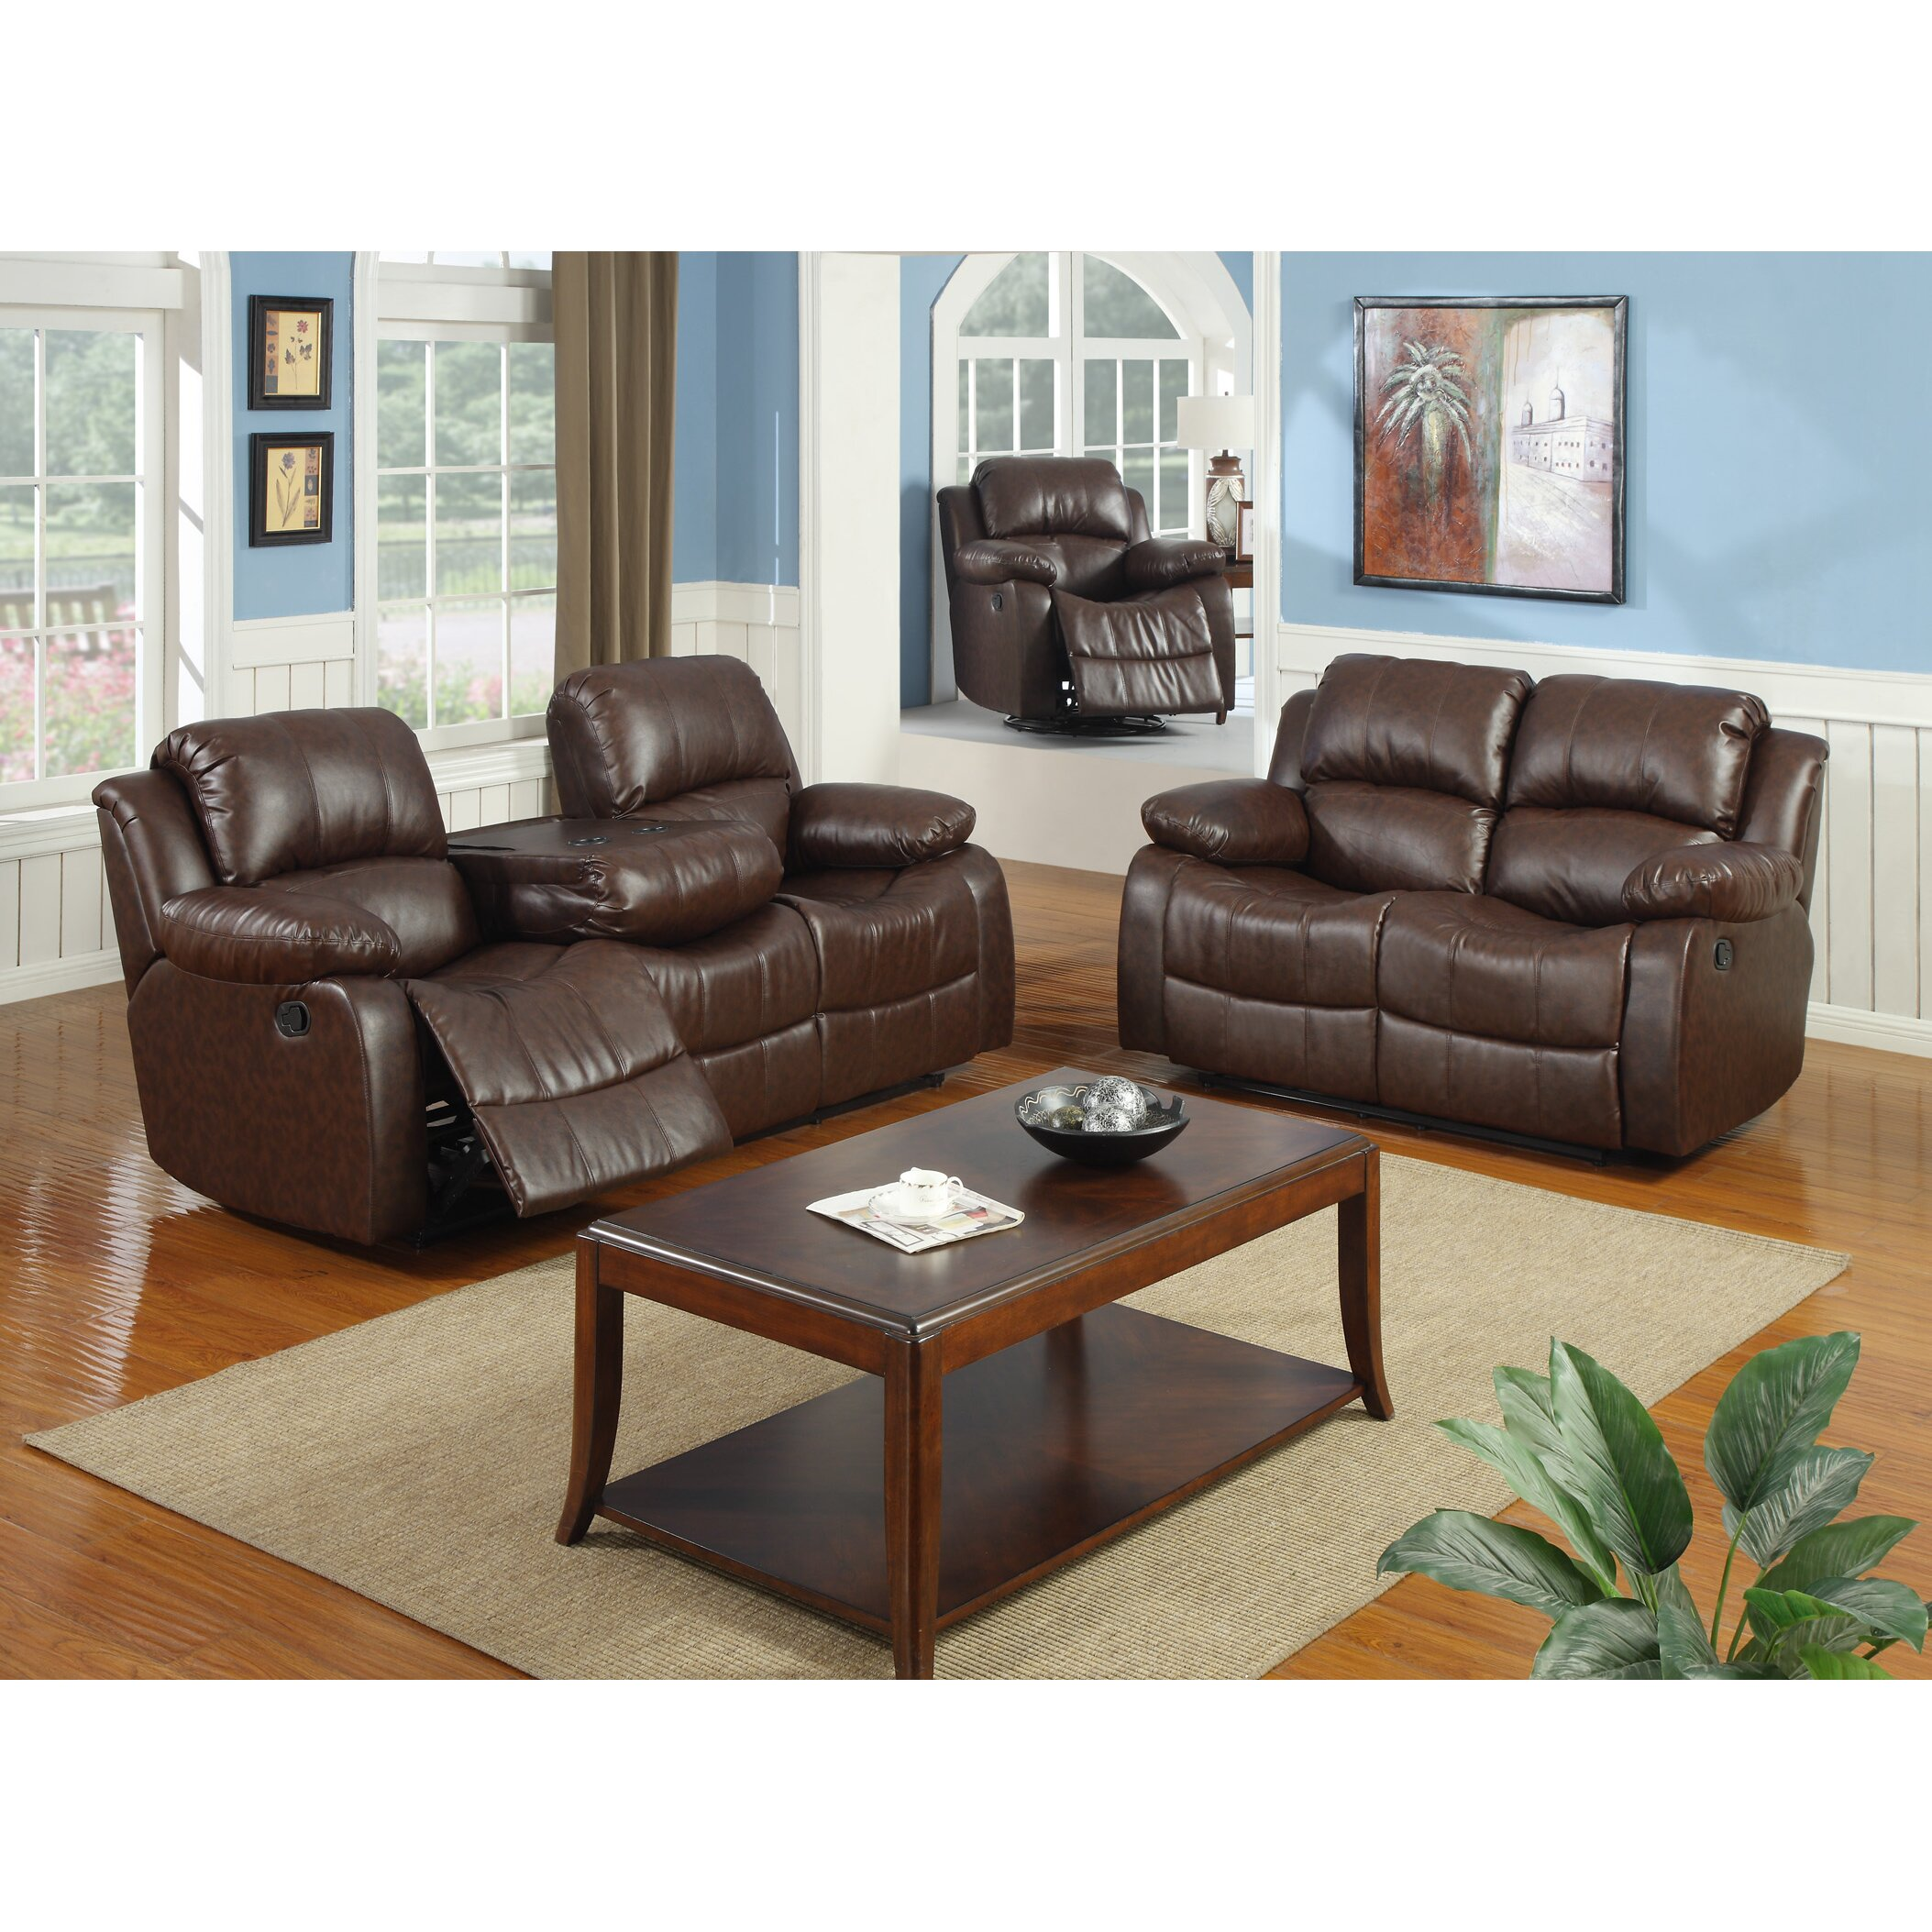 Best quality furniture bonded leather 3 piece recliner for Best quality furniture